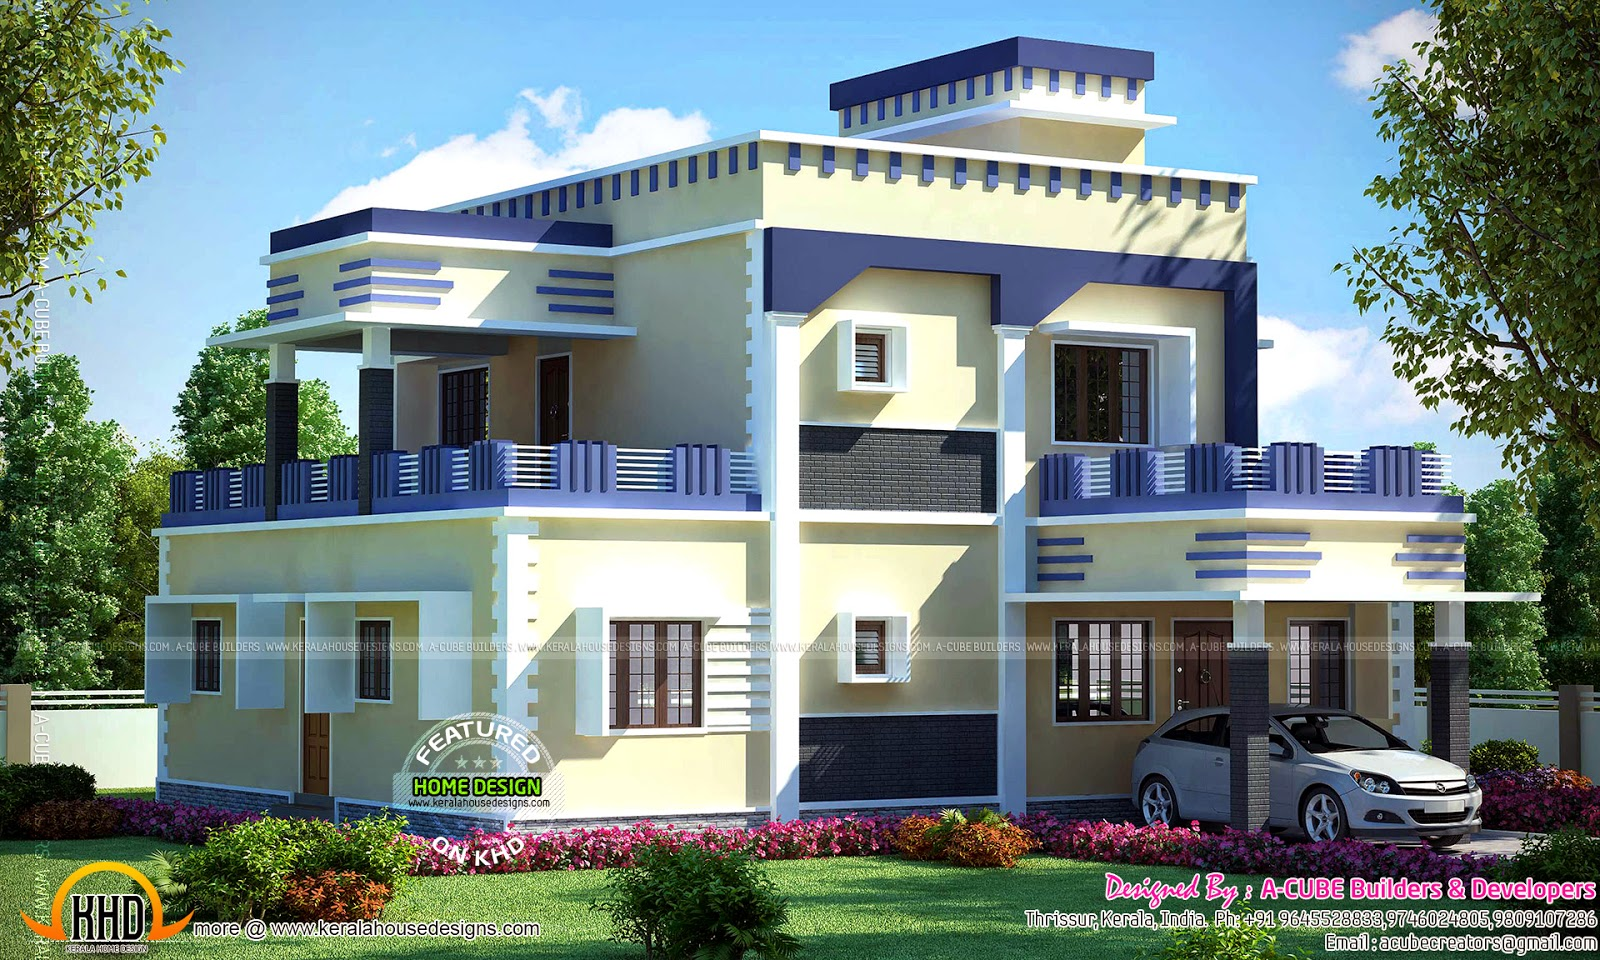 Flat Roof House Decorative Elements Kerala Home Design And Floor Plans